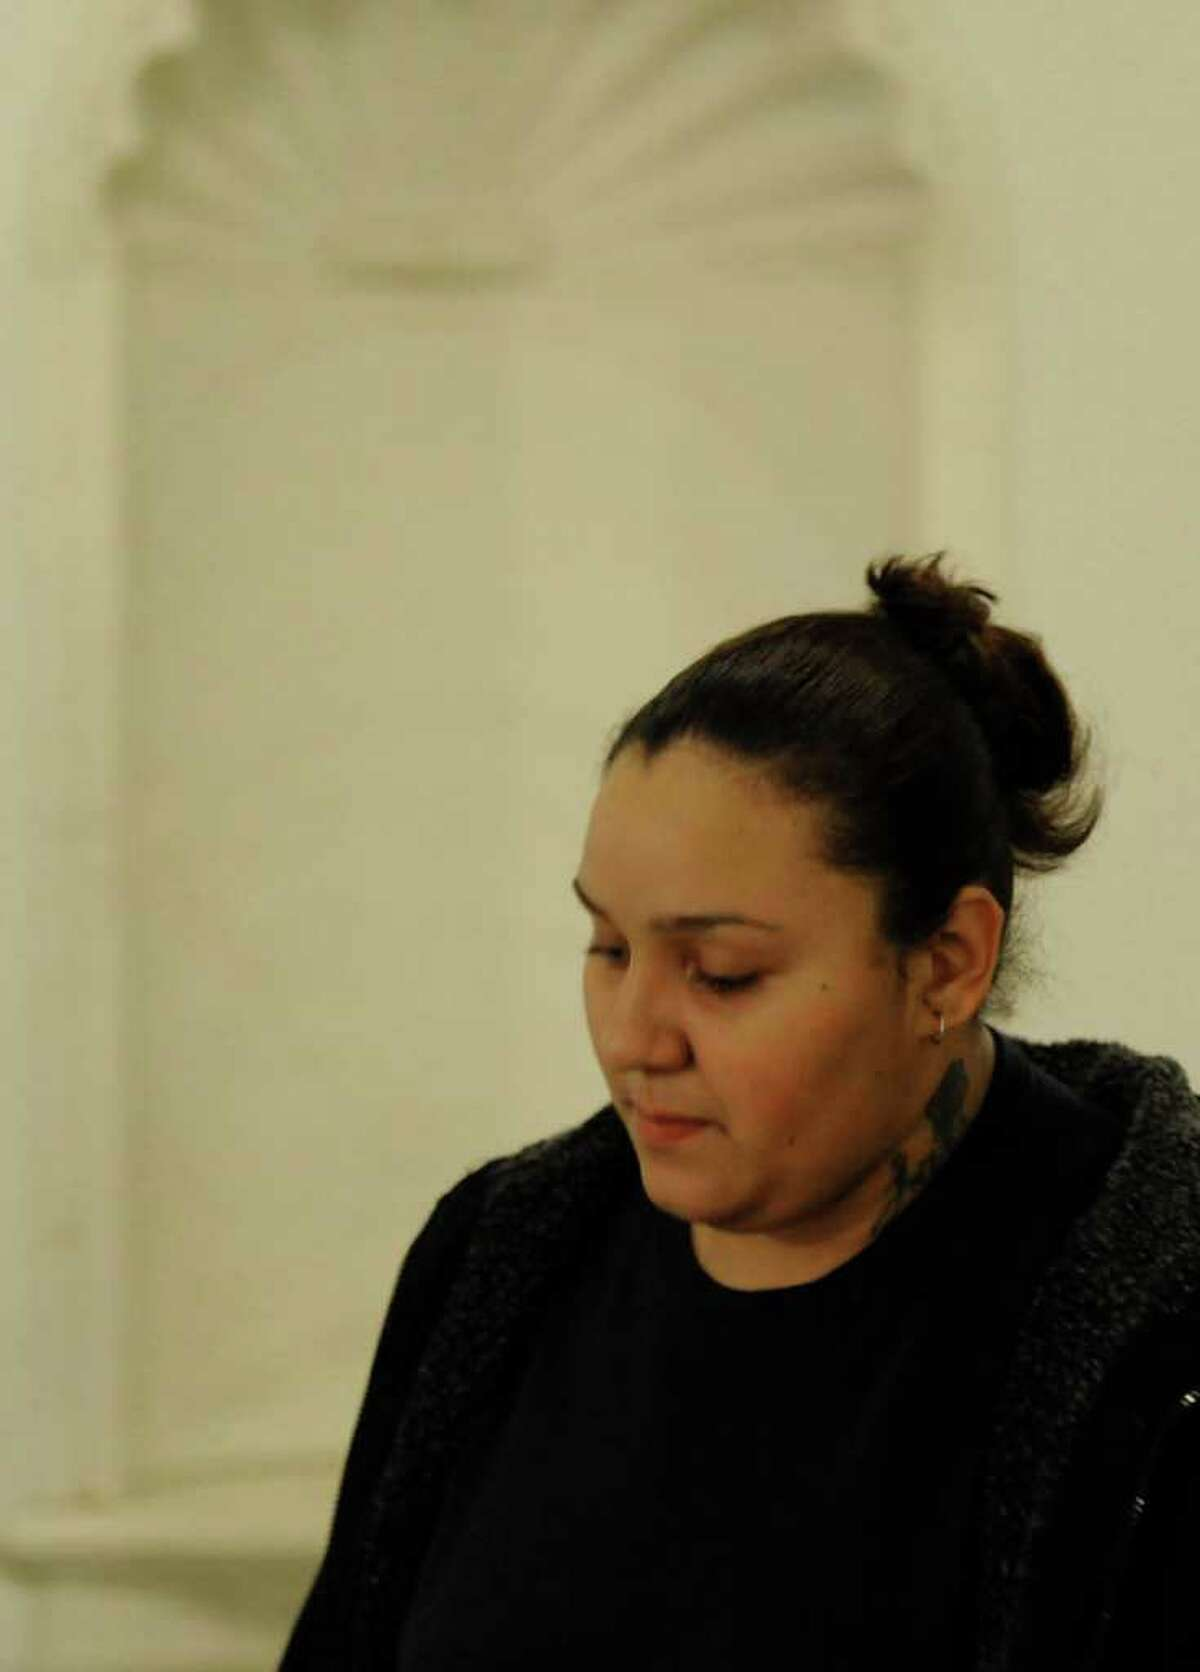 Jasmine L. Tirado leaves Schenectady City Court, after her appearance Dec. 7, 2011. (Skip Dickstein / Times Union)